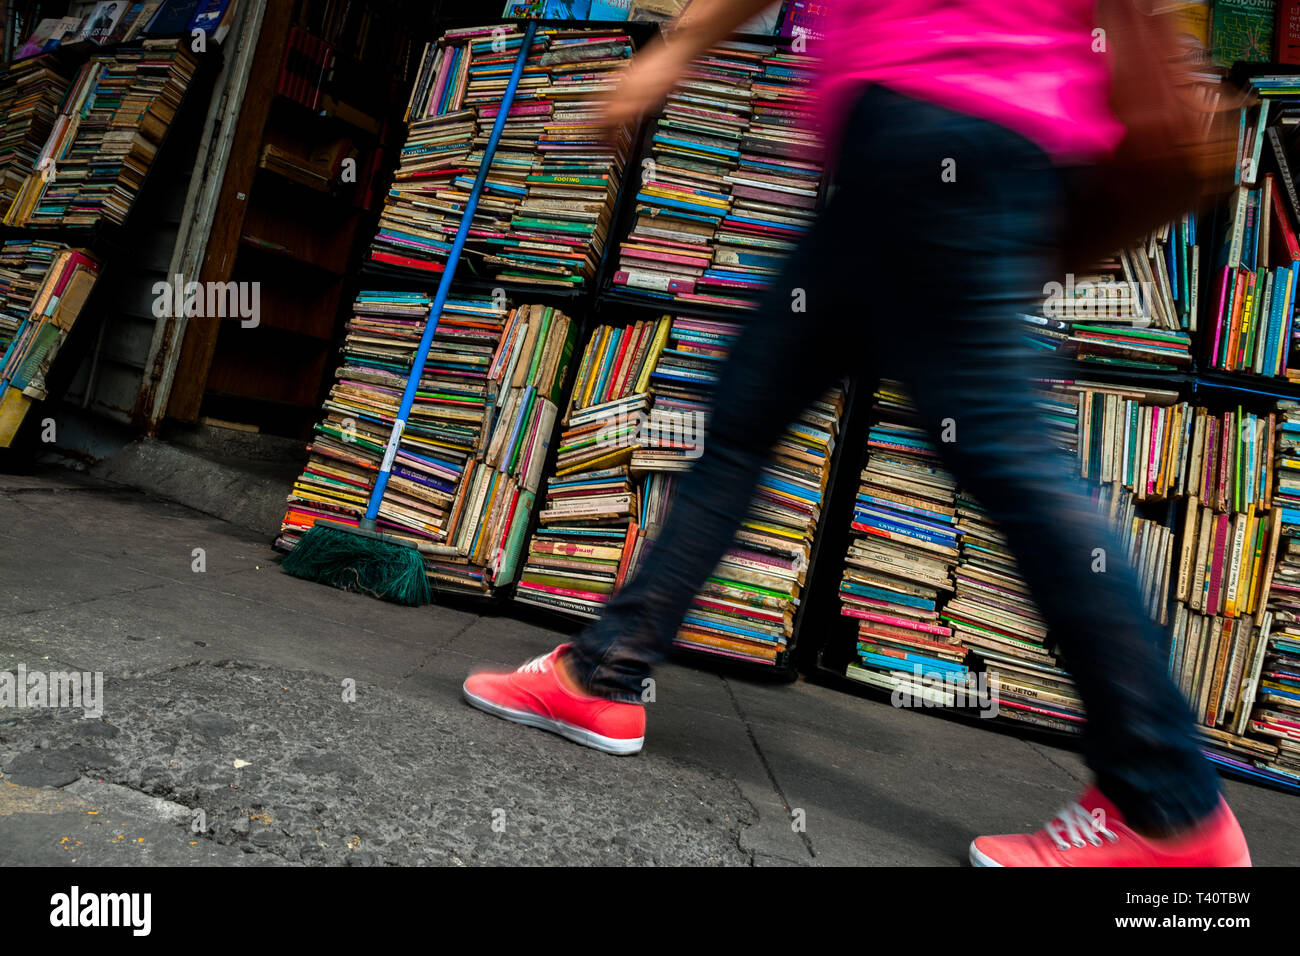 A Salvadoran woman walks along hundreds of used books stacked in boxes on the street in a secondhand bookshop in San Salvador, El Salvador. - Stock Image